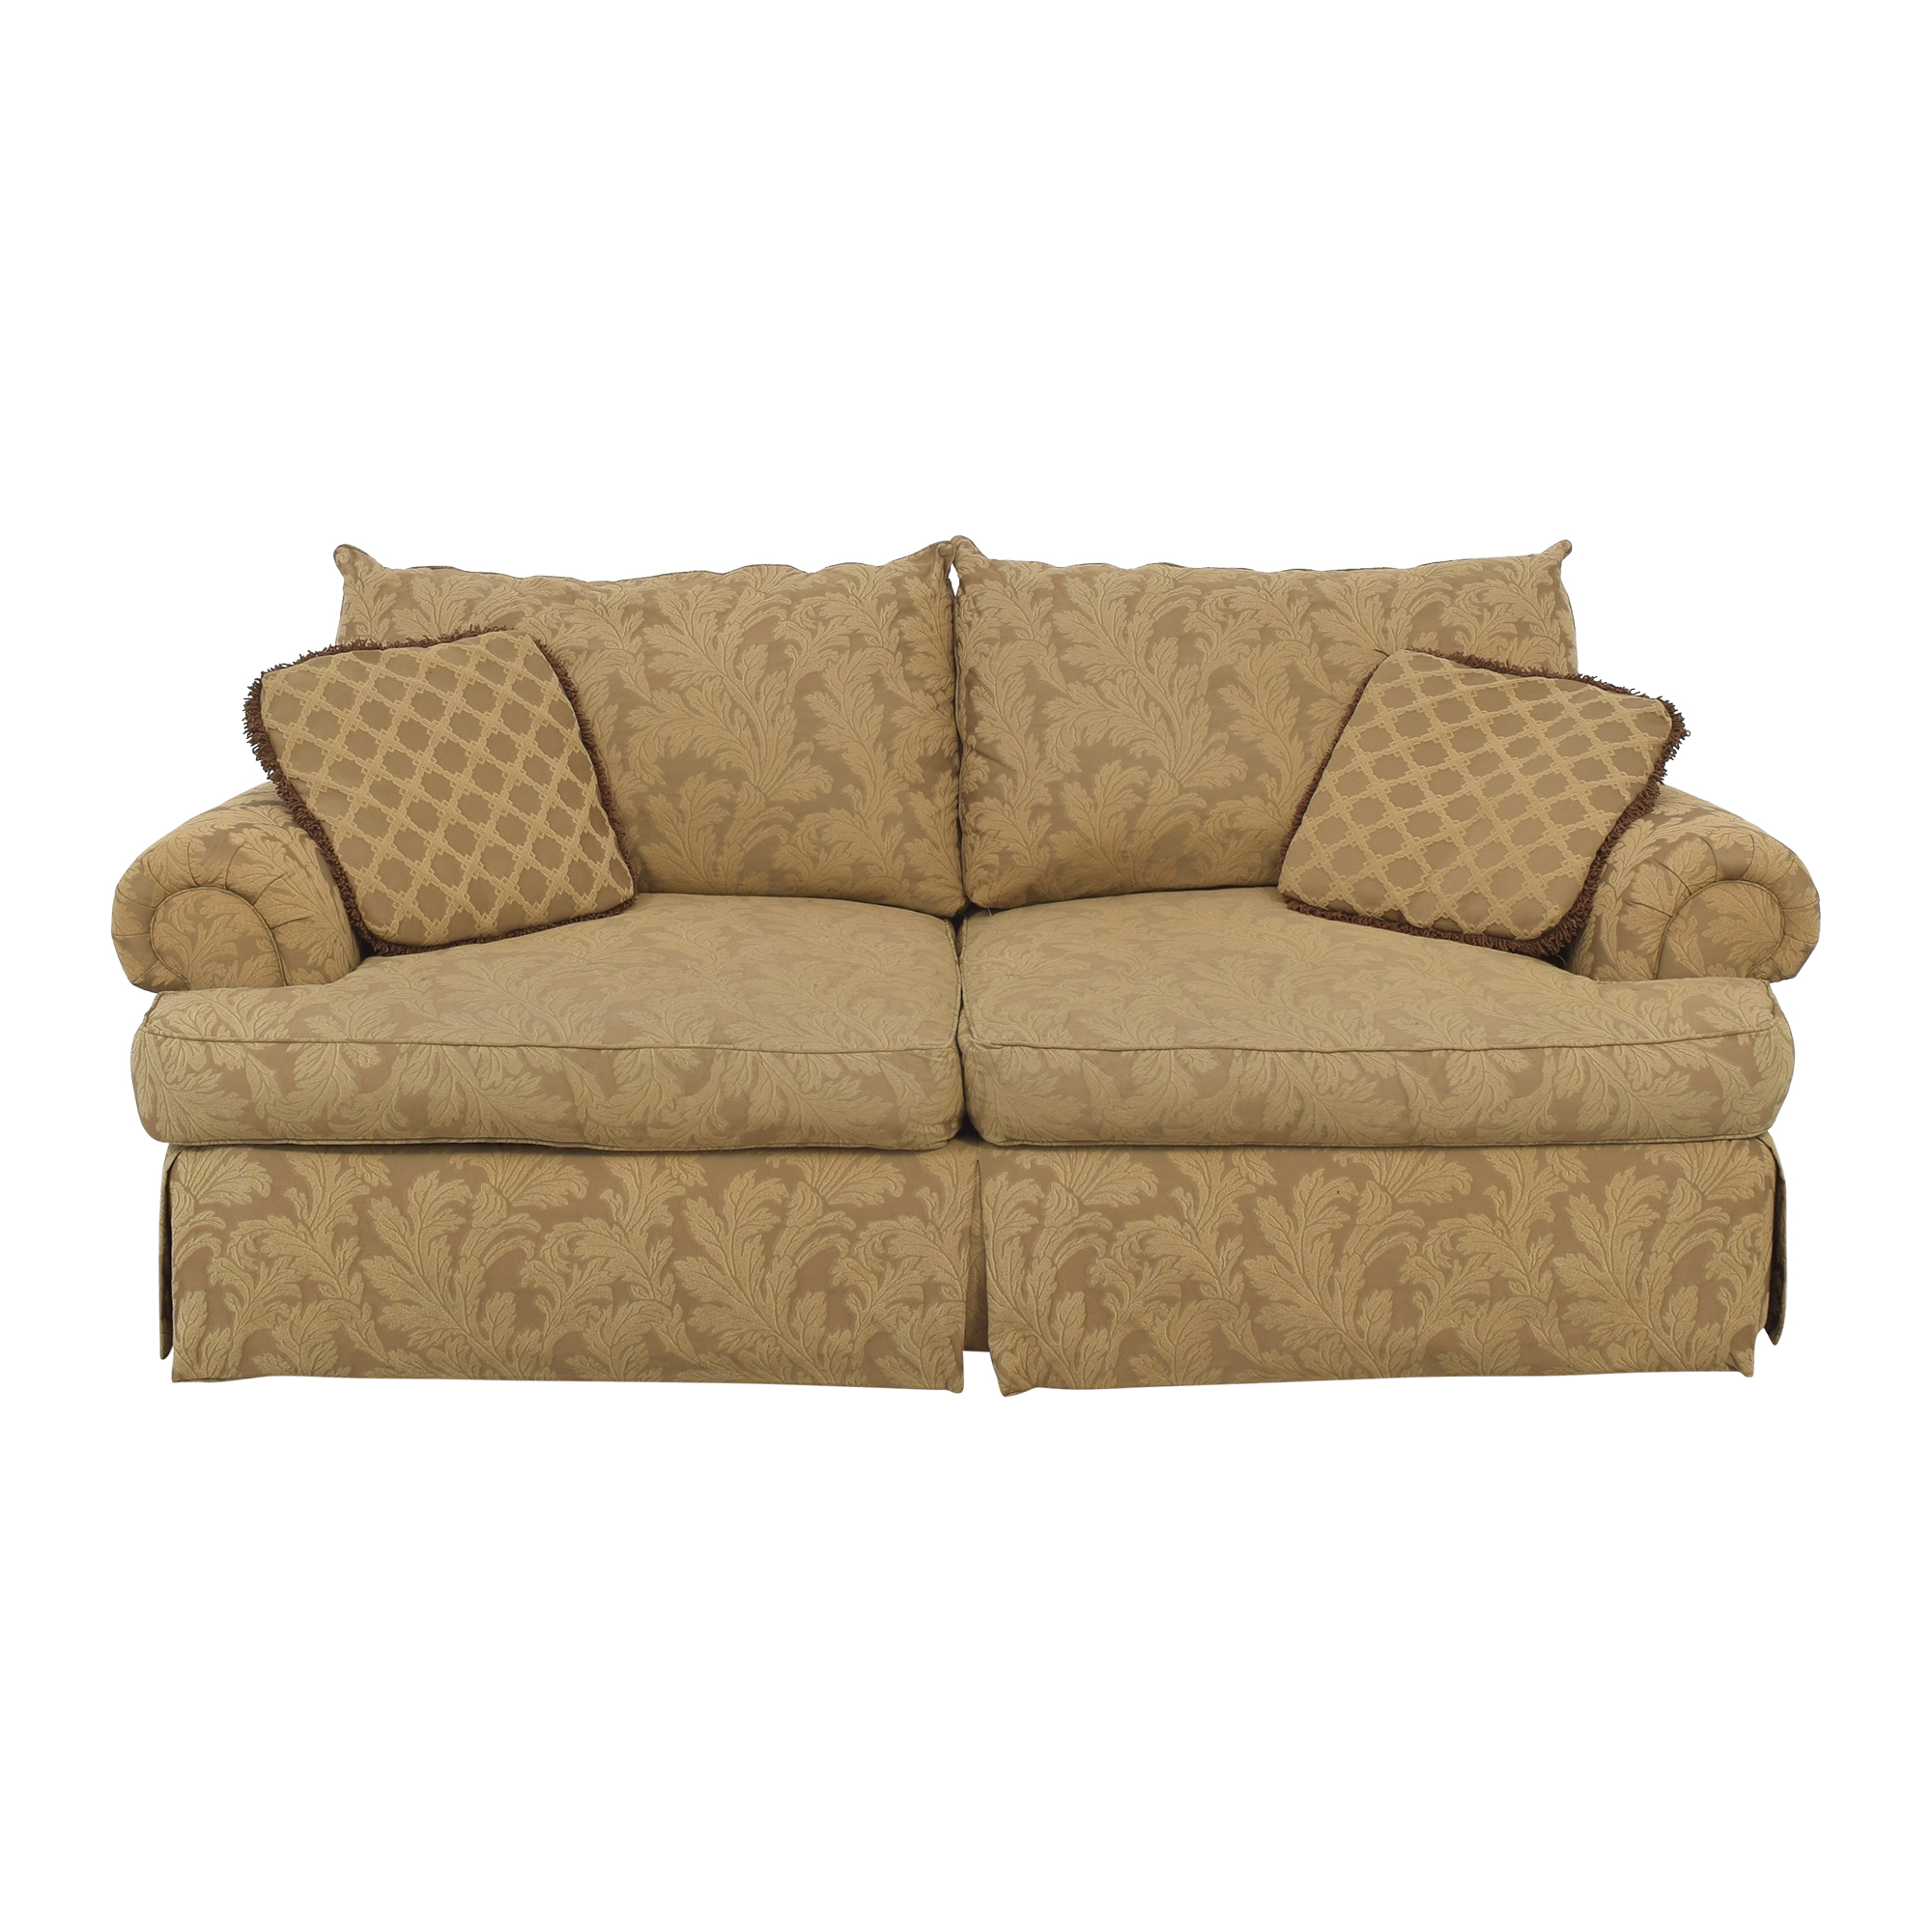 Thomasville Thomasville Skirted Sofa used